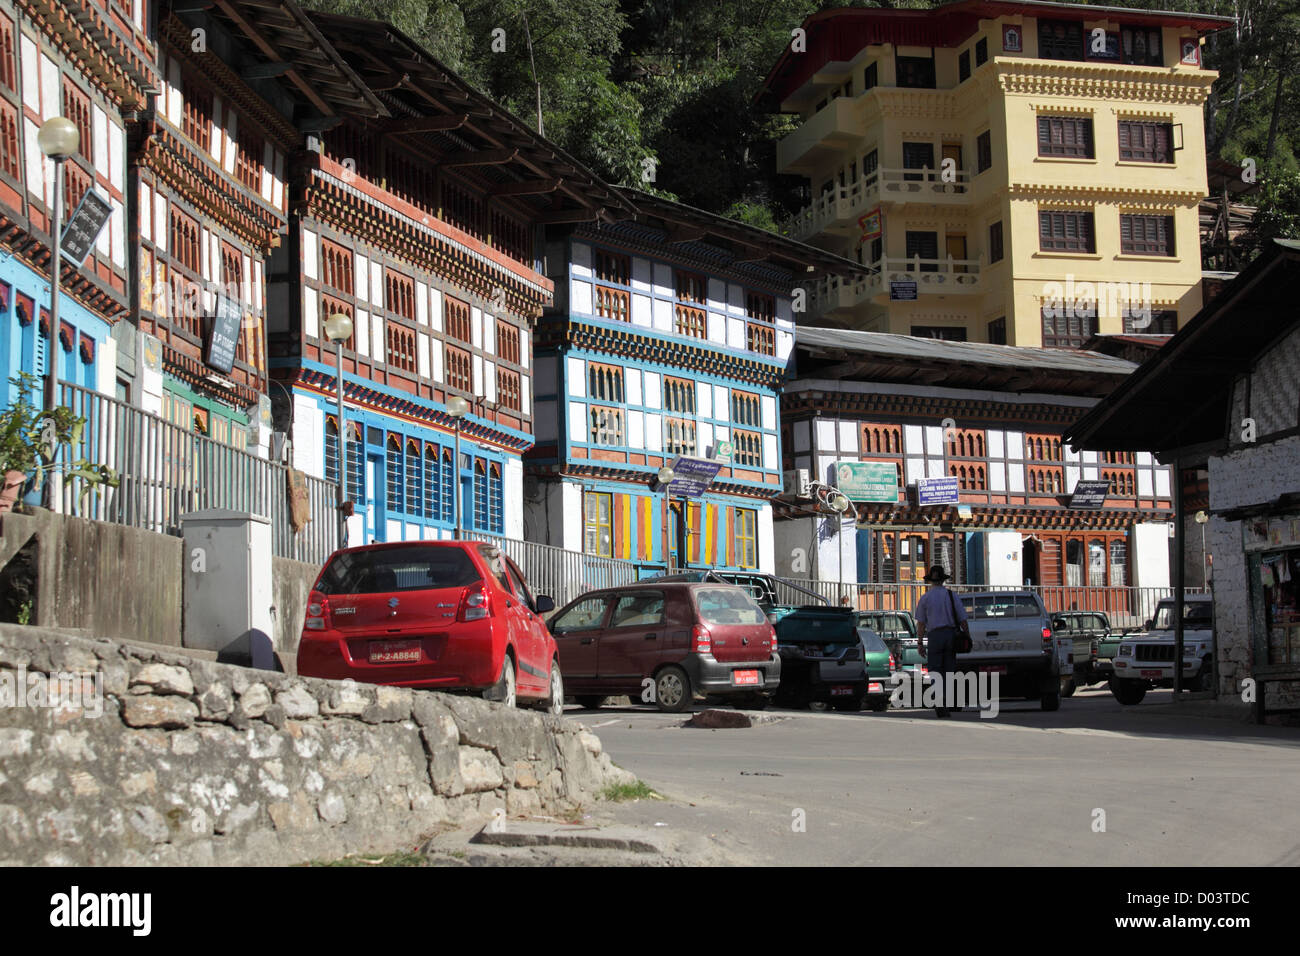 A street in Bhutan where cars are parked and the shops and local hotels built in the traditional Bhutanese architectural - Stock Image